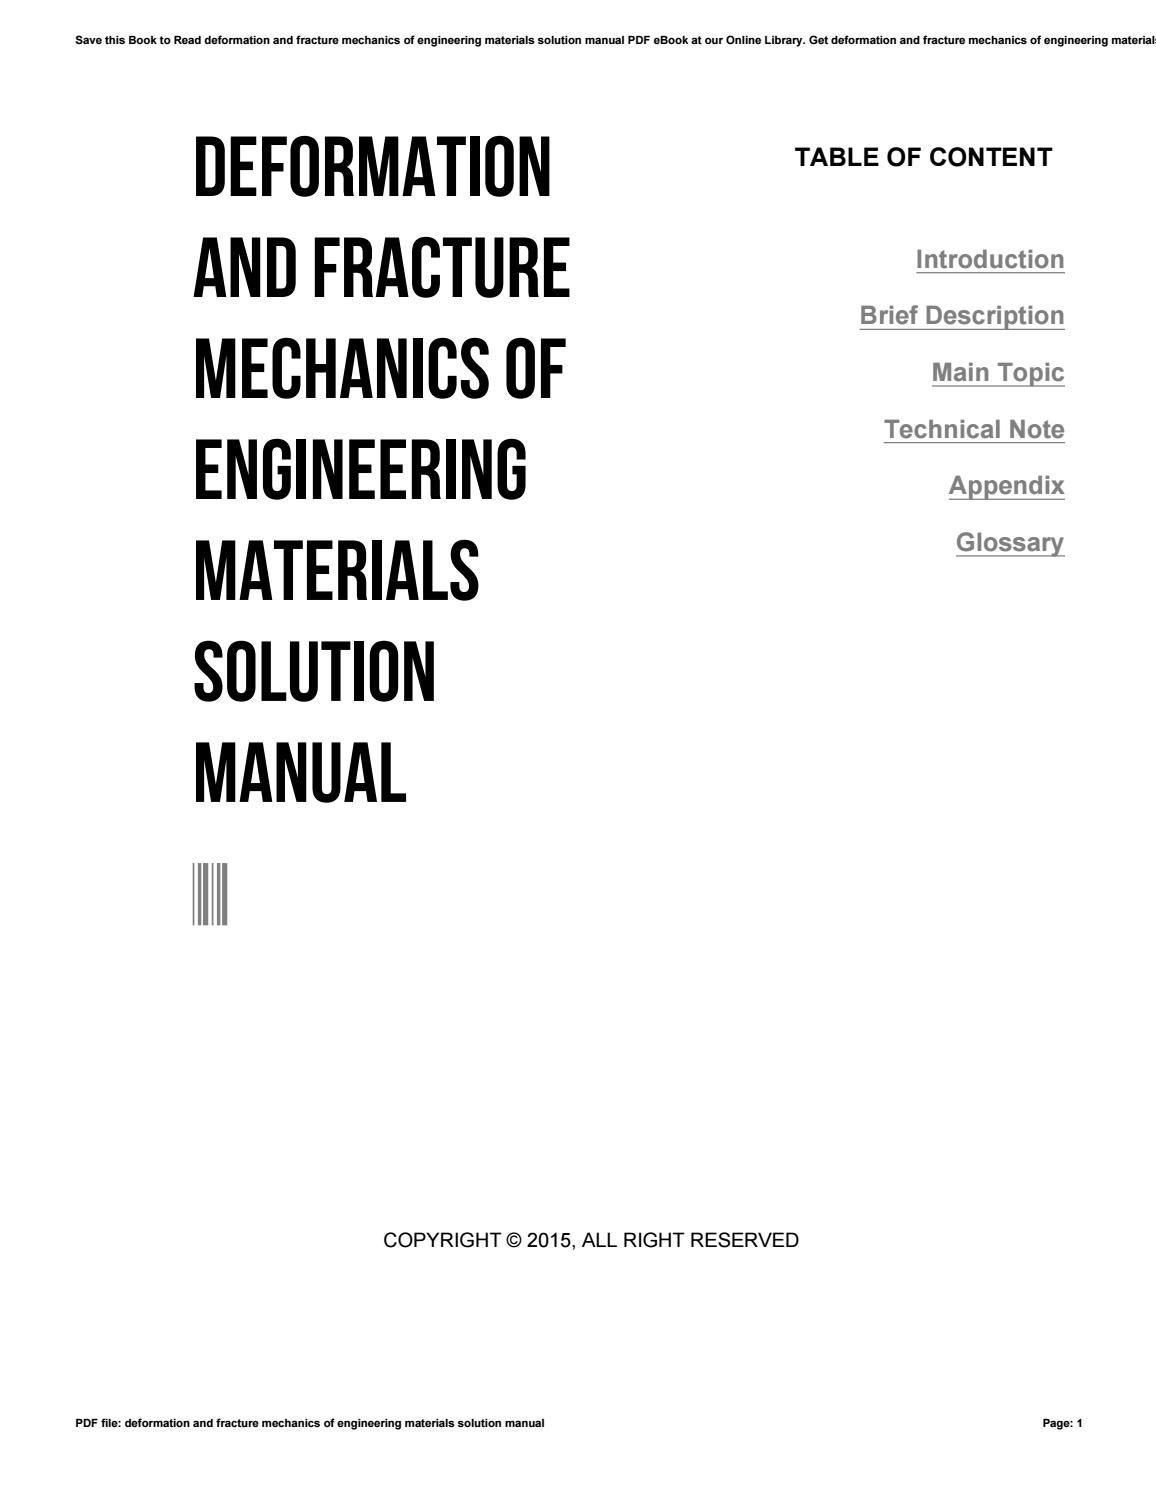 Deformation and fracture mechanics of engineering